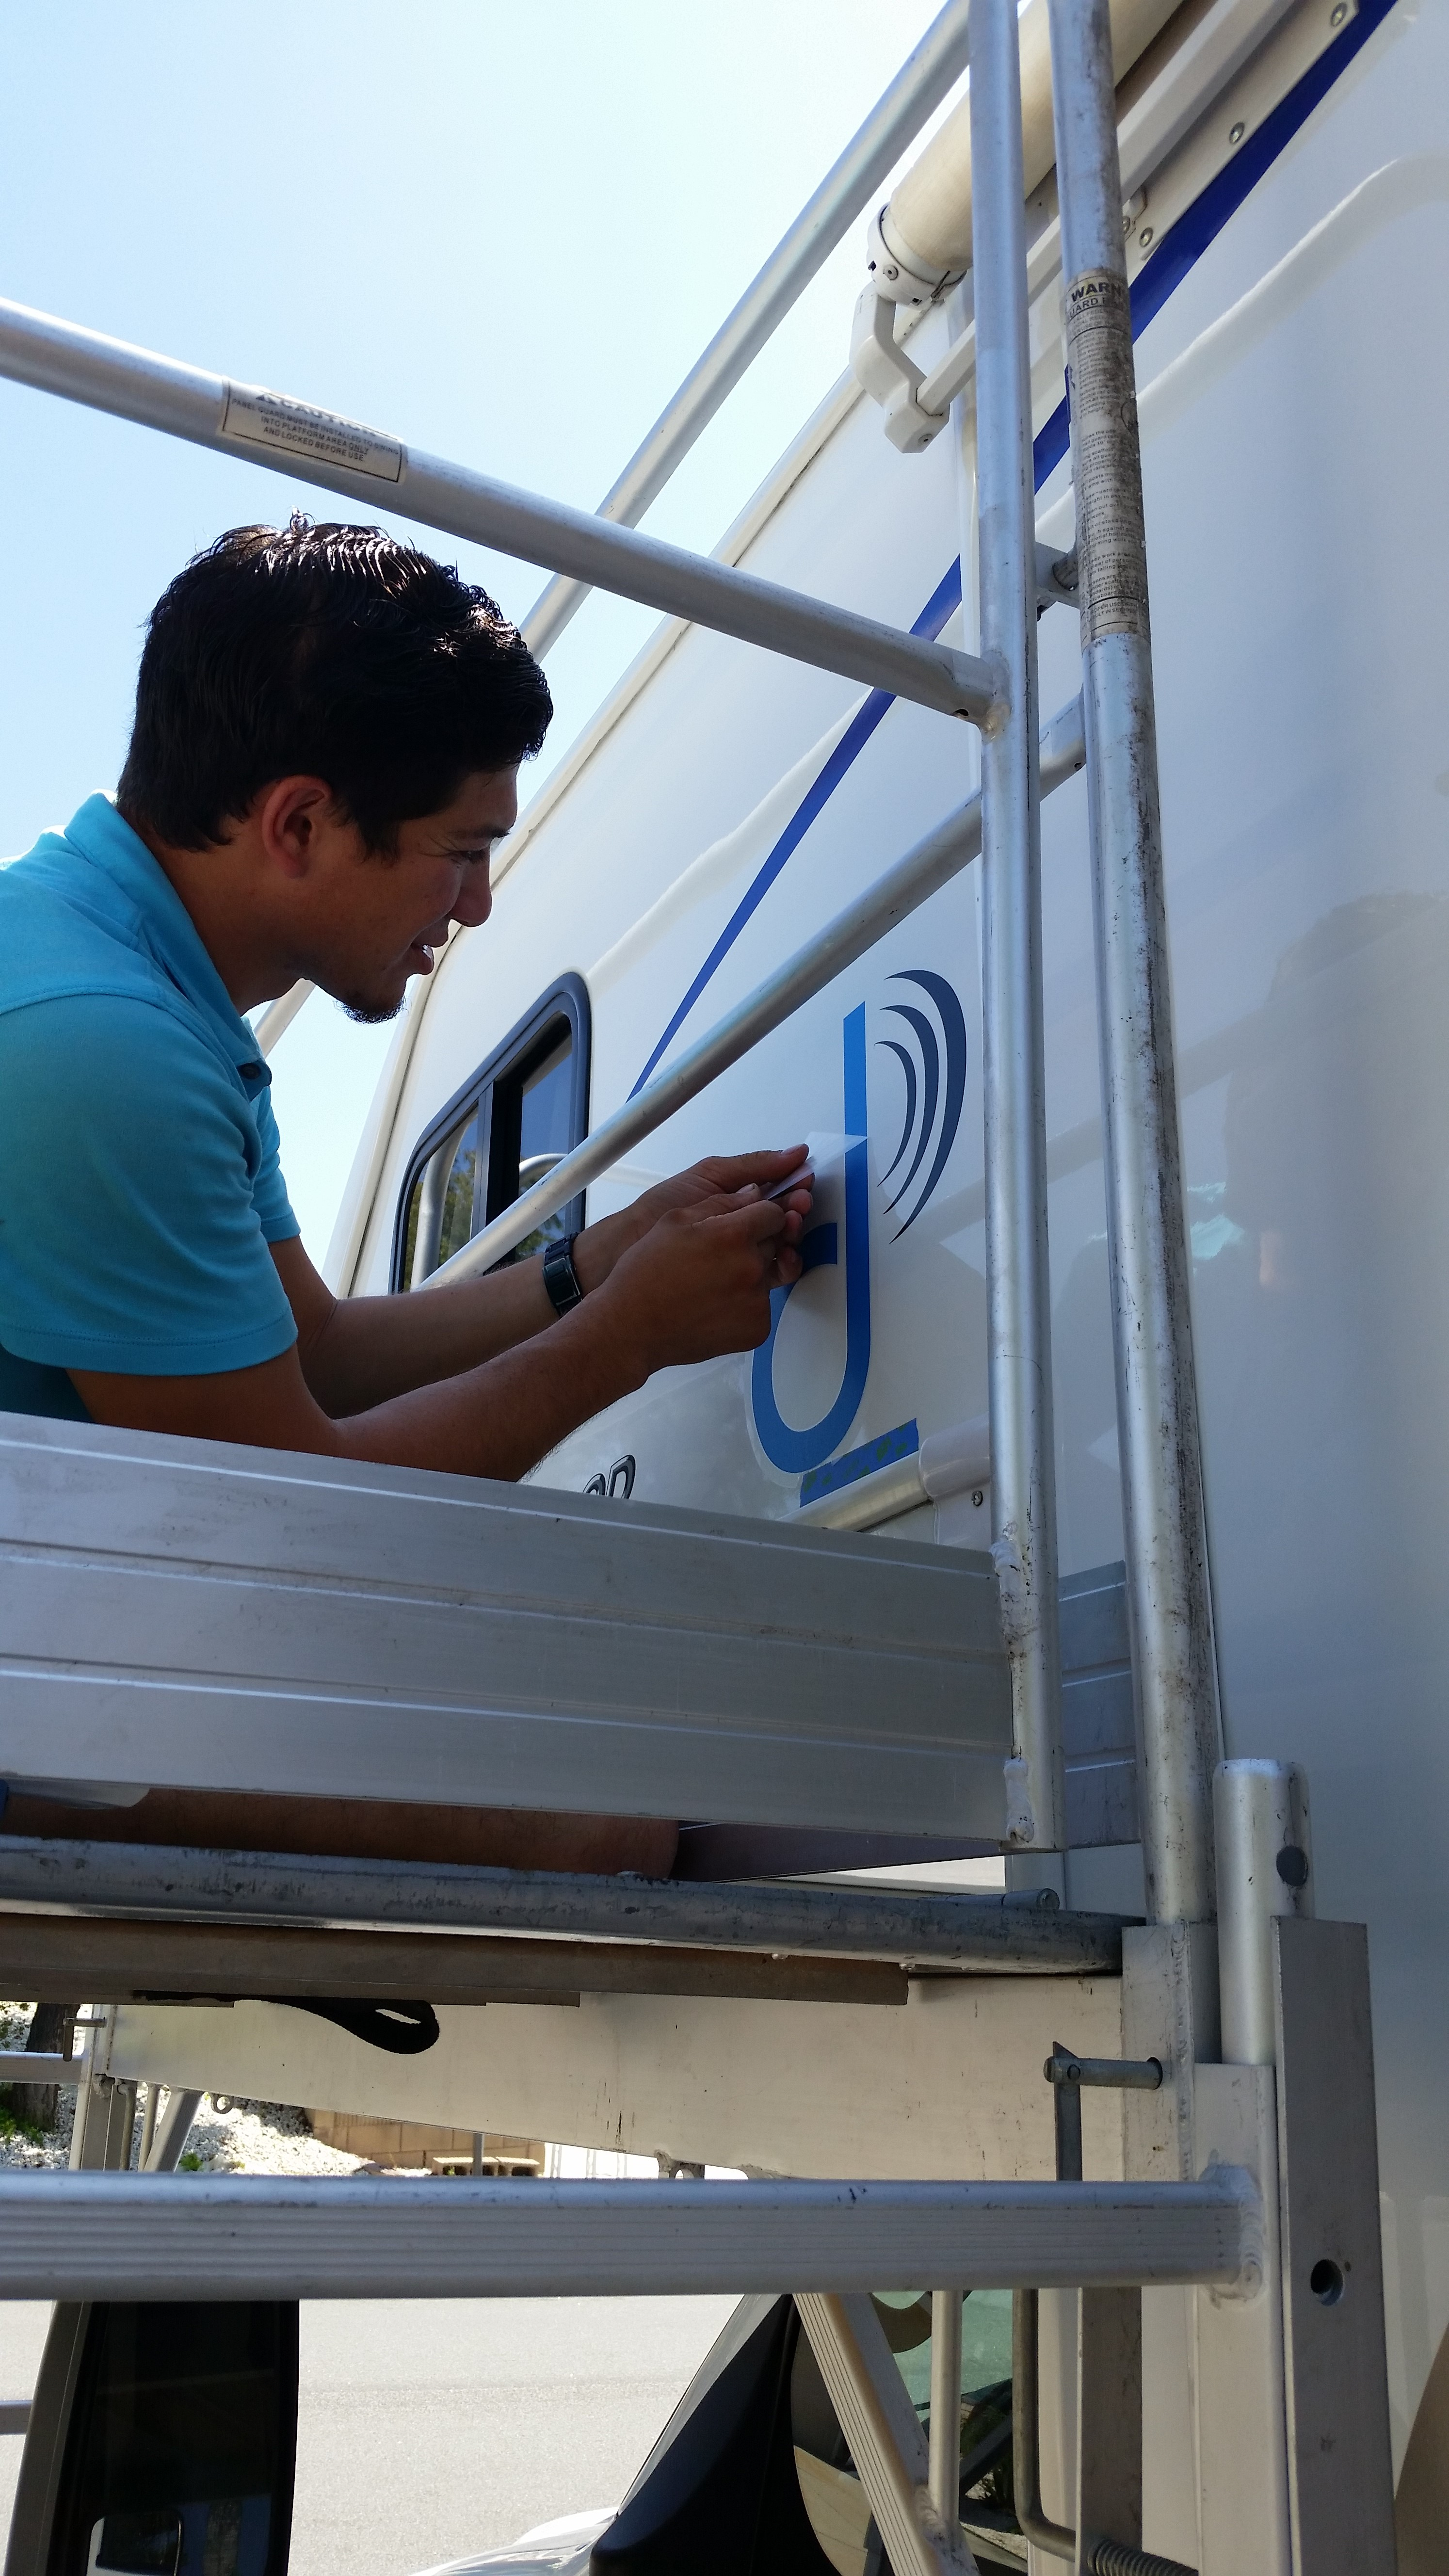 Installation of decals on RV